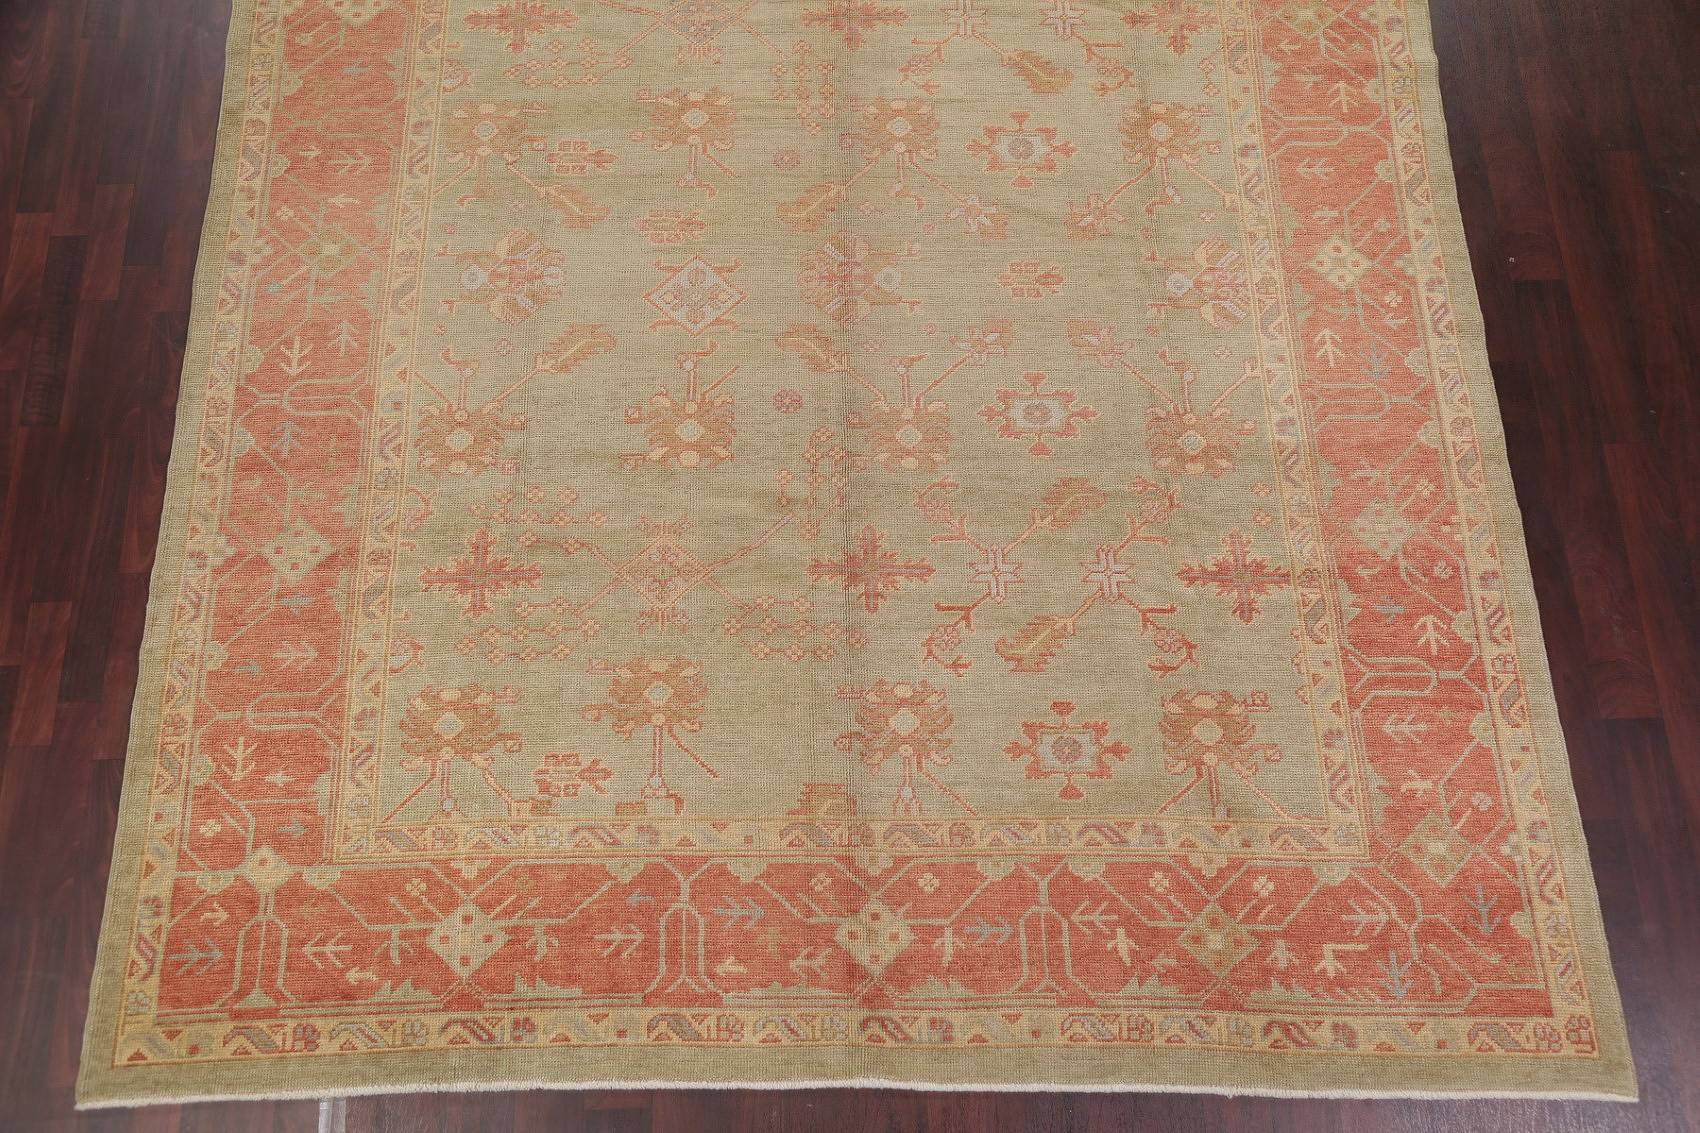 Vegetable Dye Muted Tribal Green Oushak Turkish Hand-Knotted Area Rug 9x12